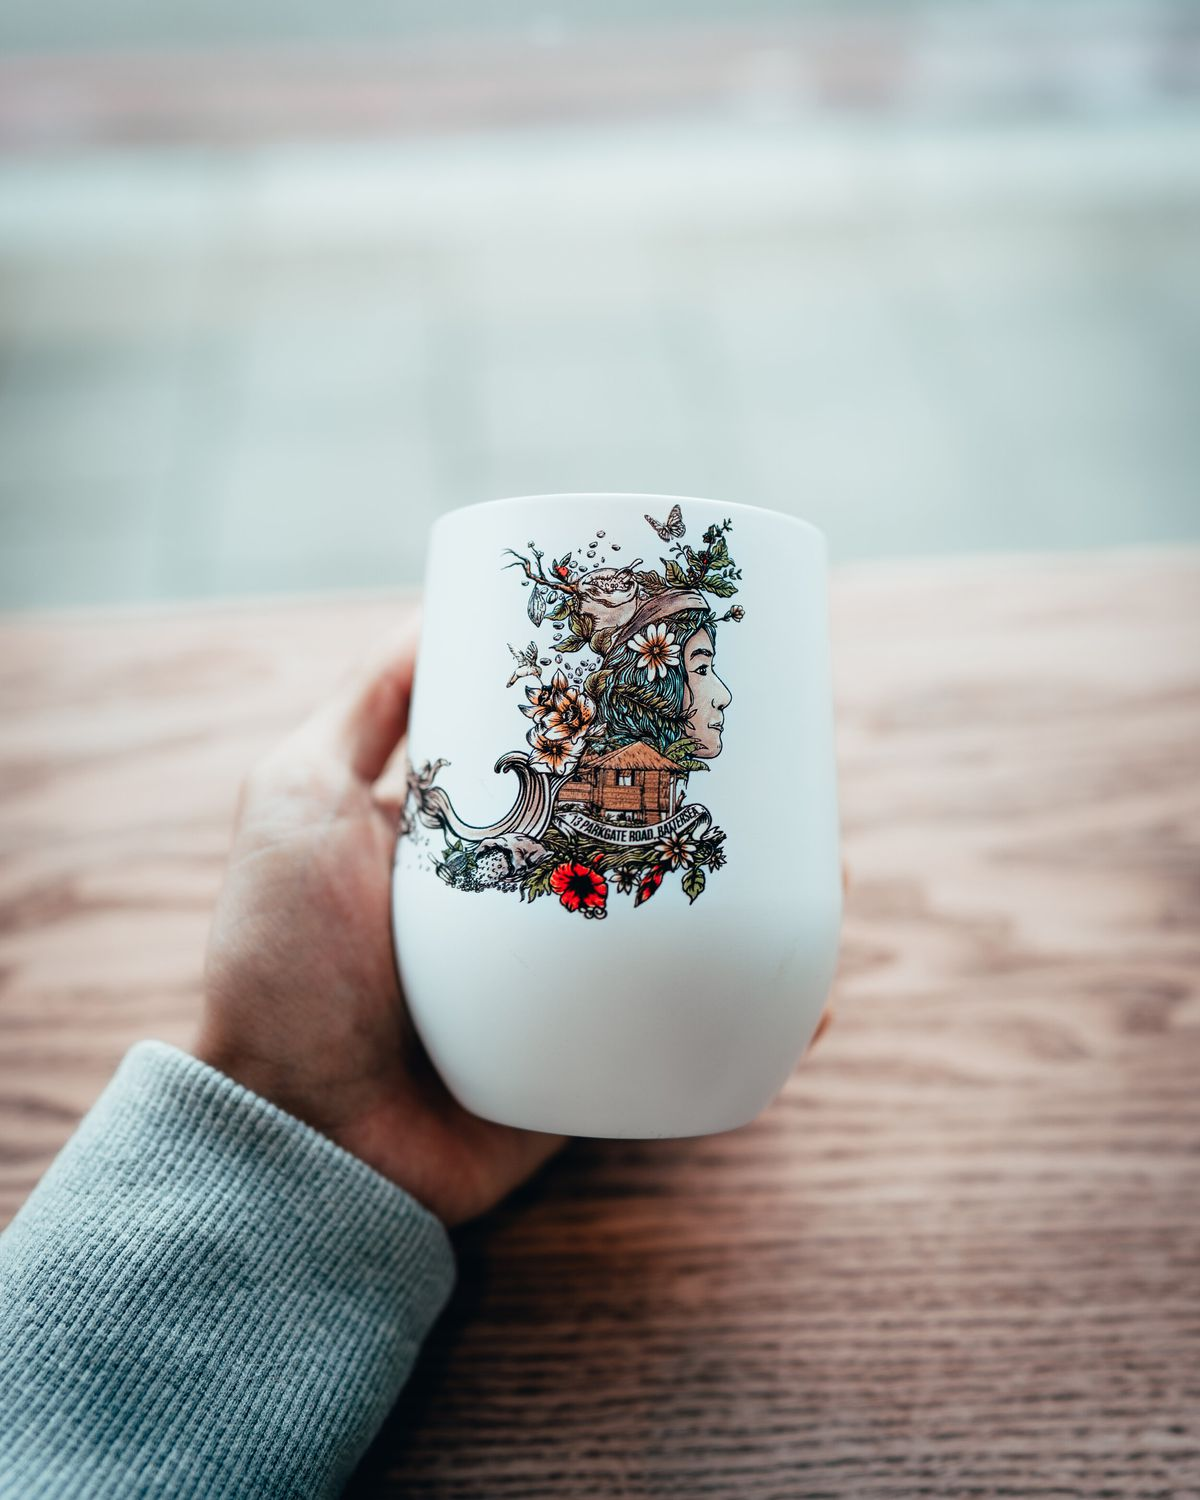 A coffee cup with Kapihan's illustration